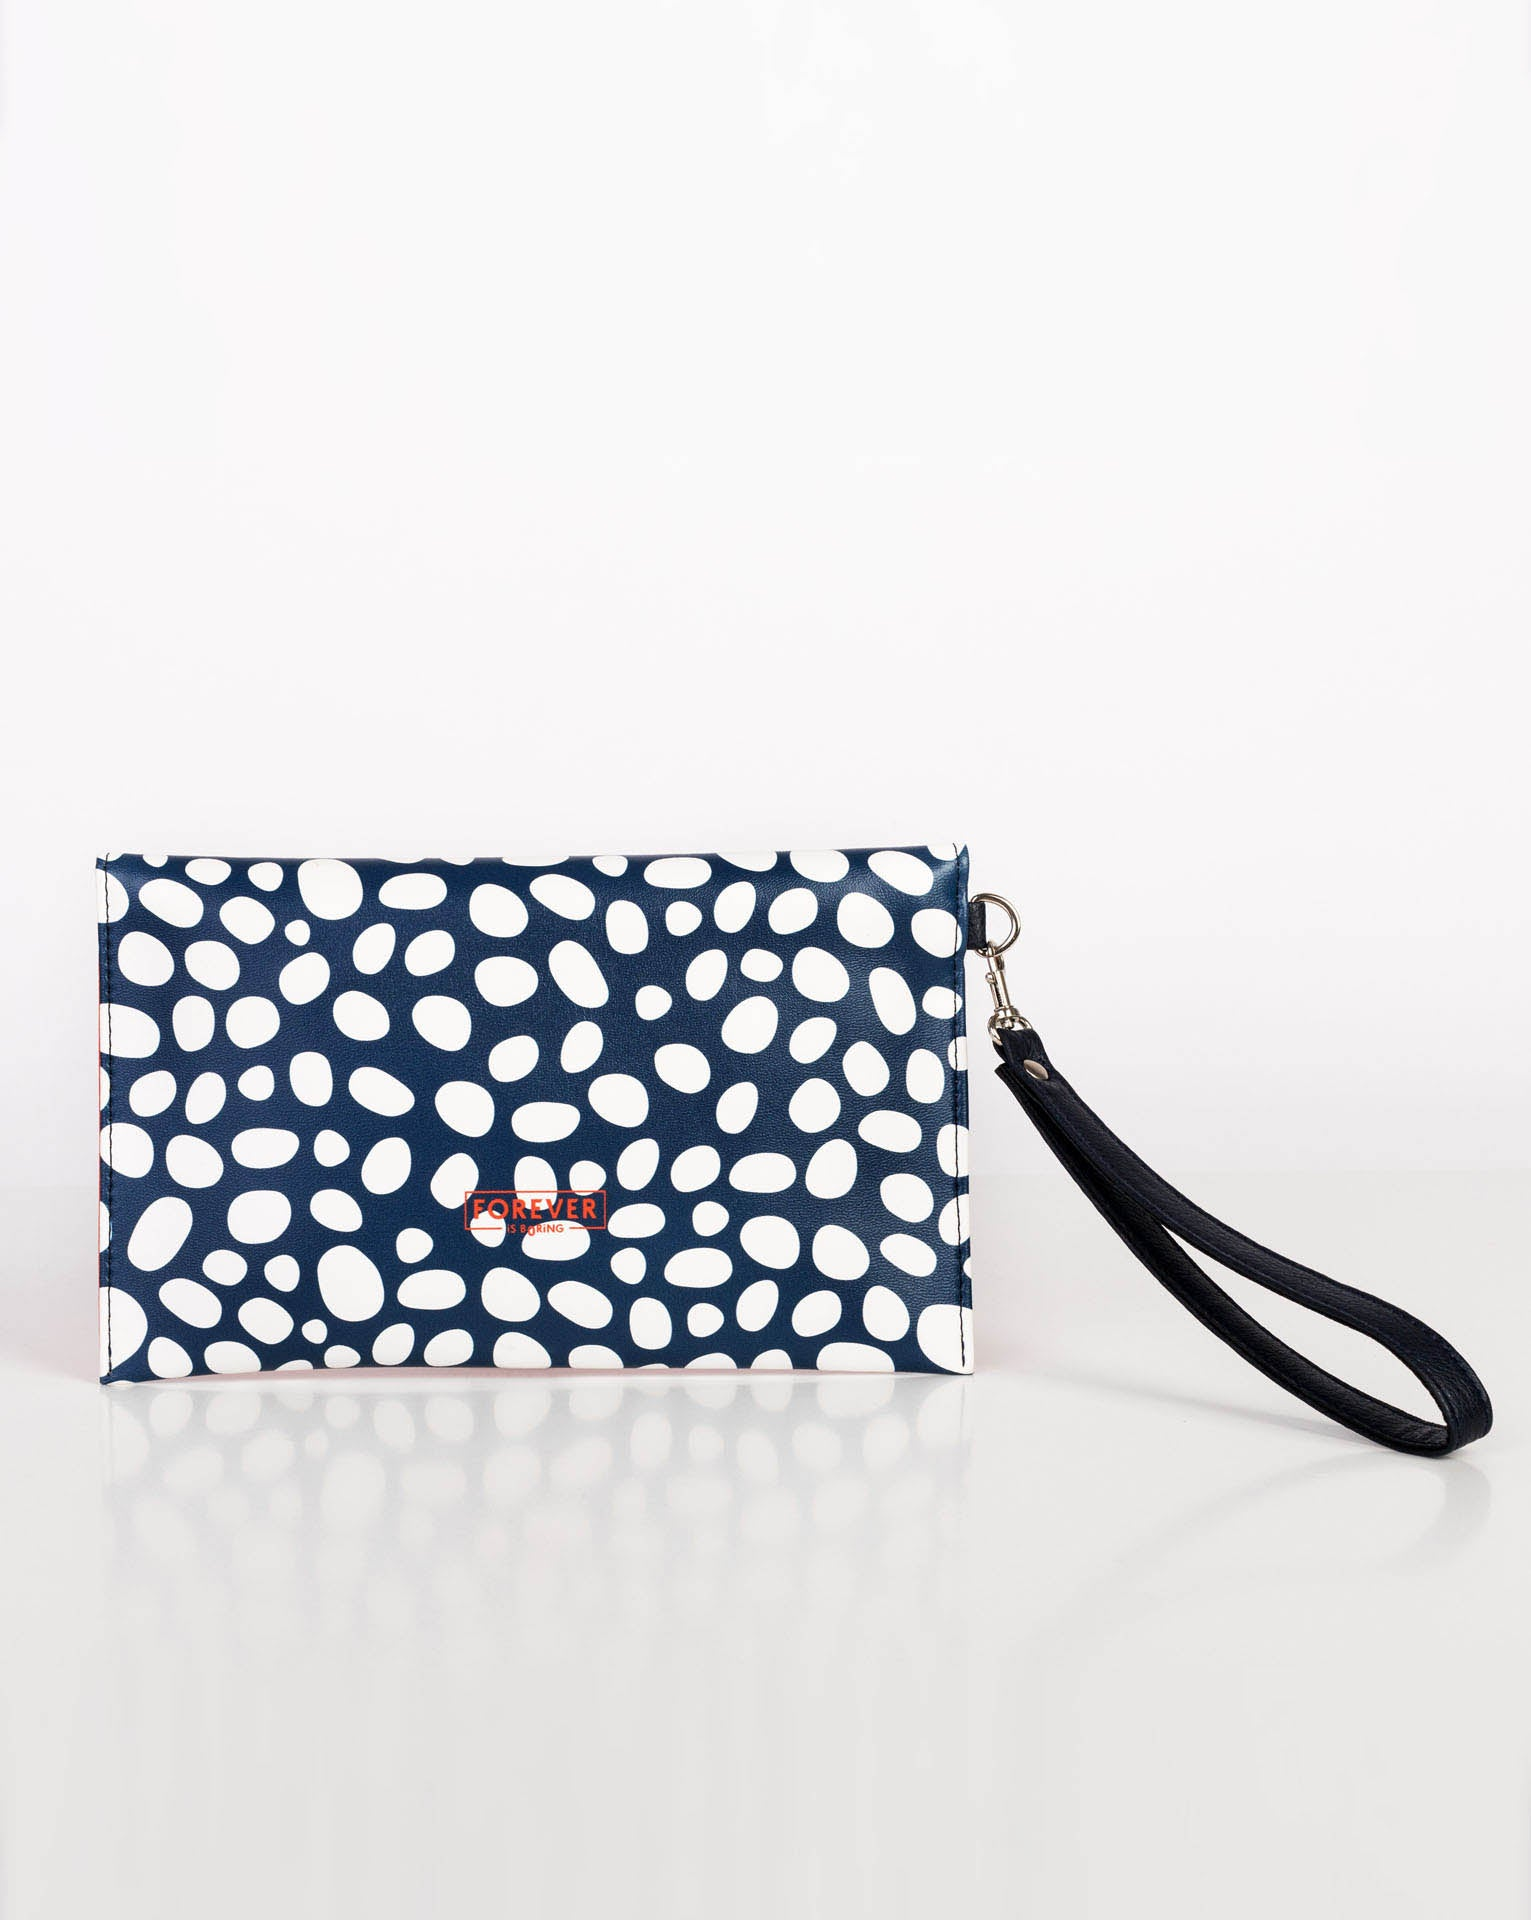 Spin Triggerfish RD Clutch - 2